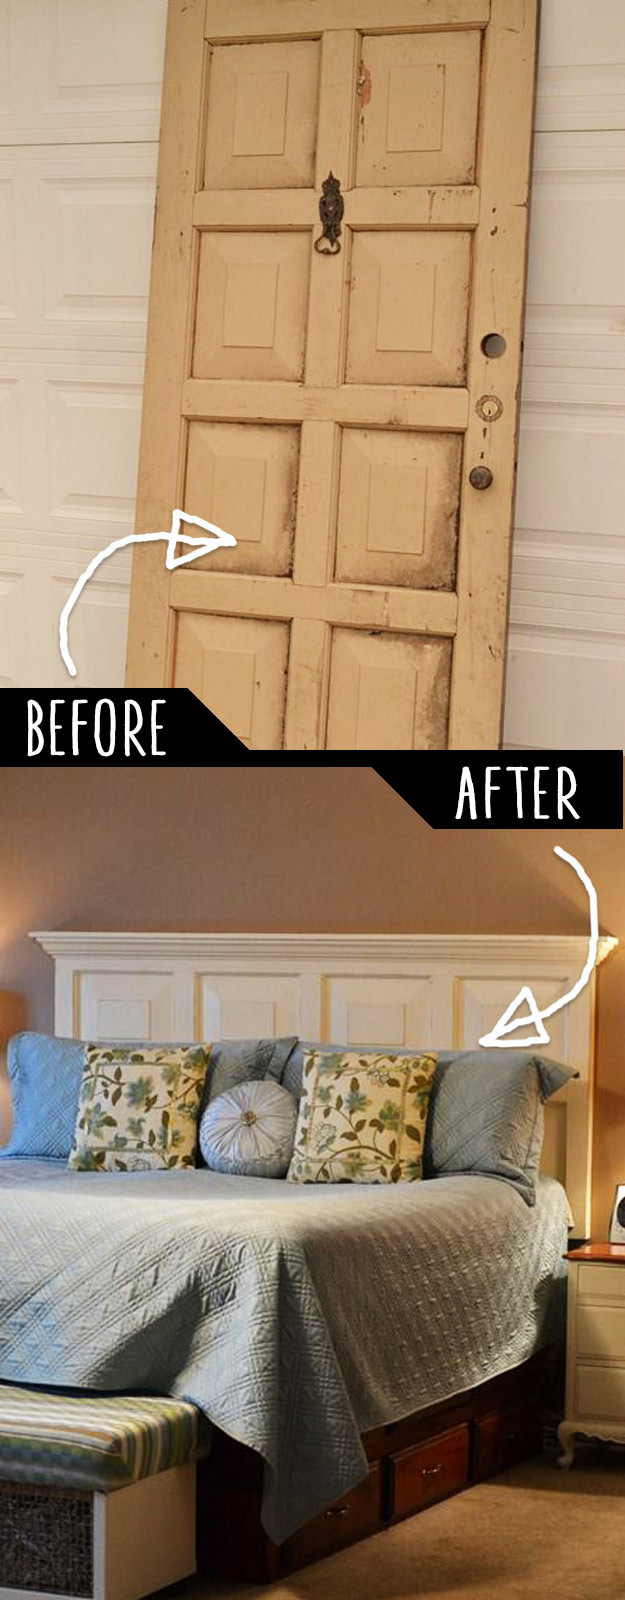 39 clever diy furniture hacks diy furniture hacks door headboard cool ideas for creative do it yourself furniture made solutioingenieria Gallery